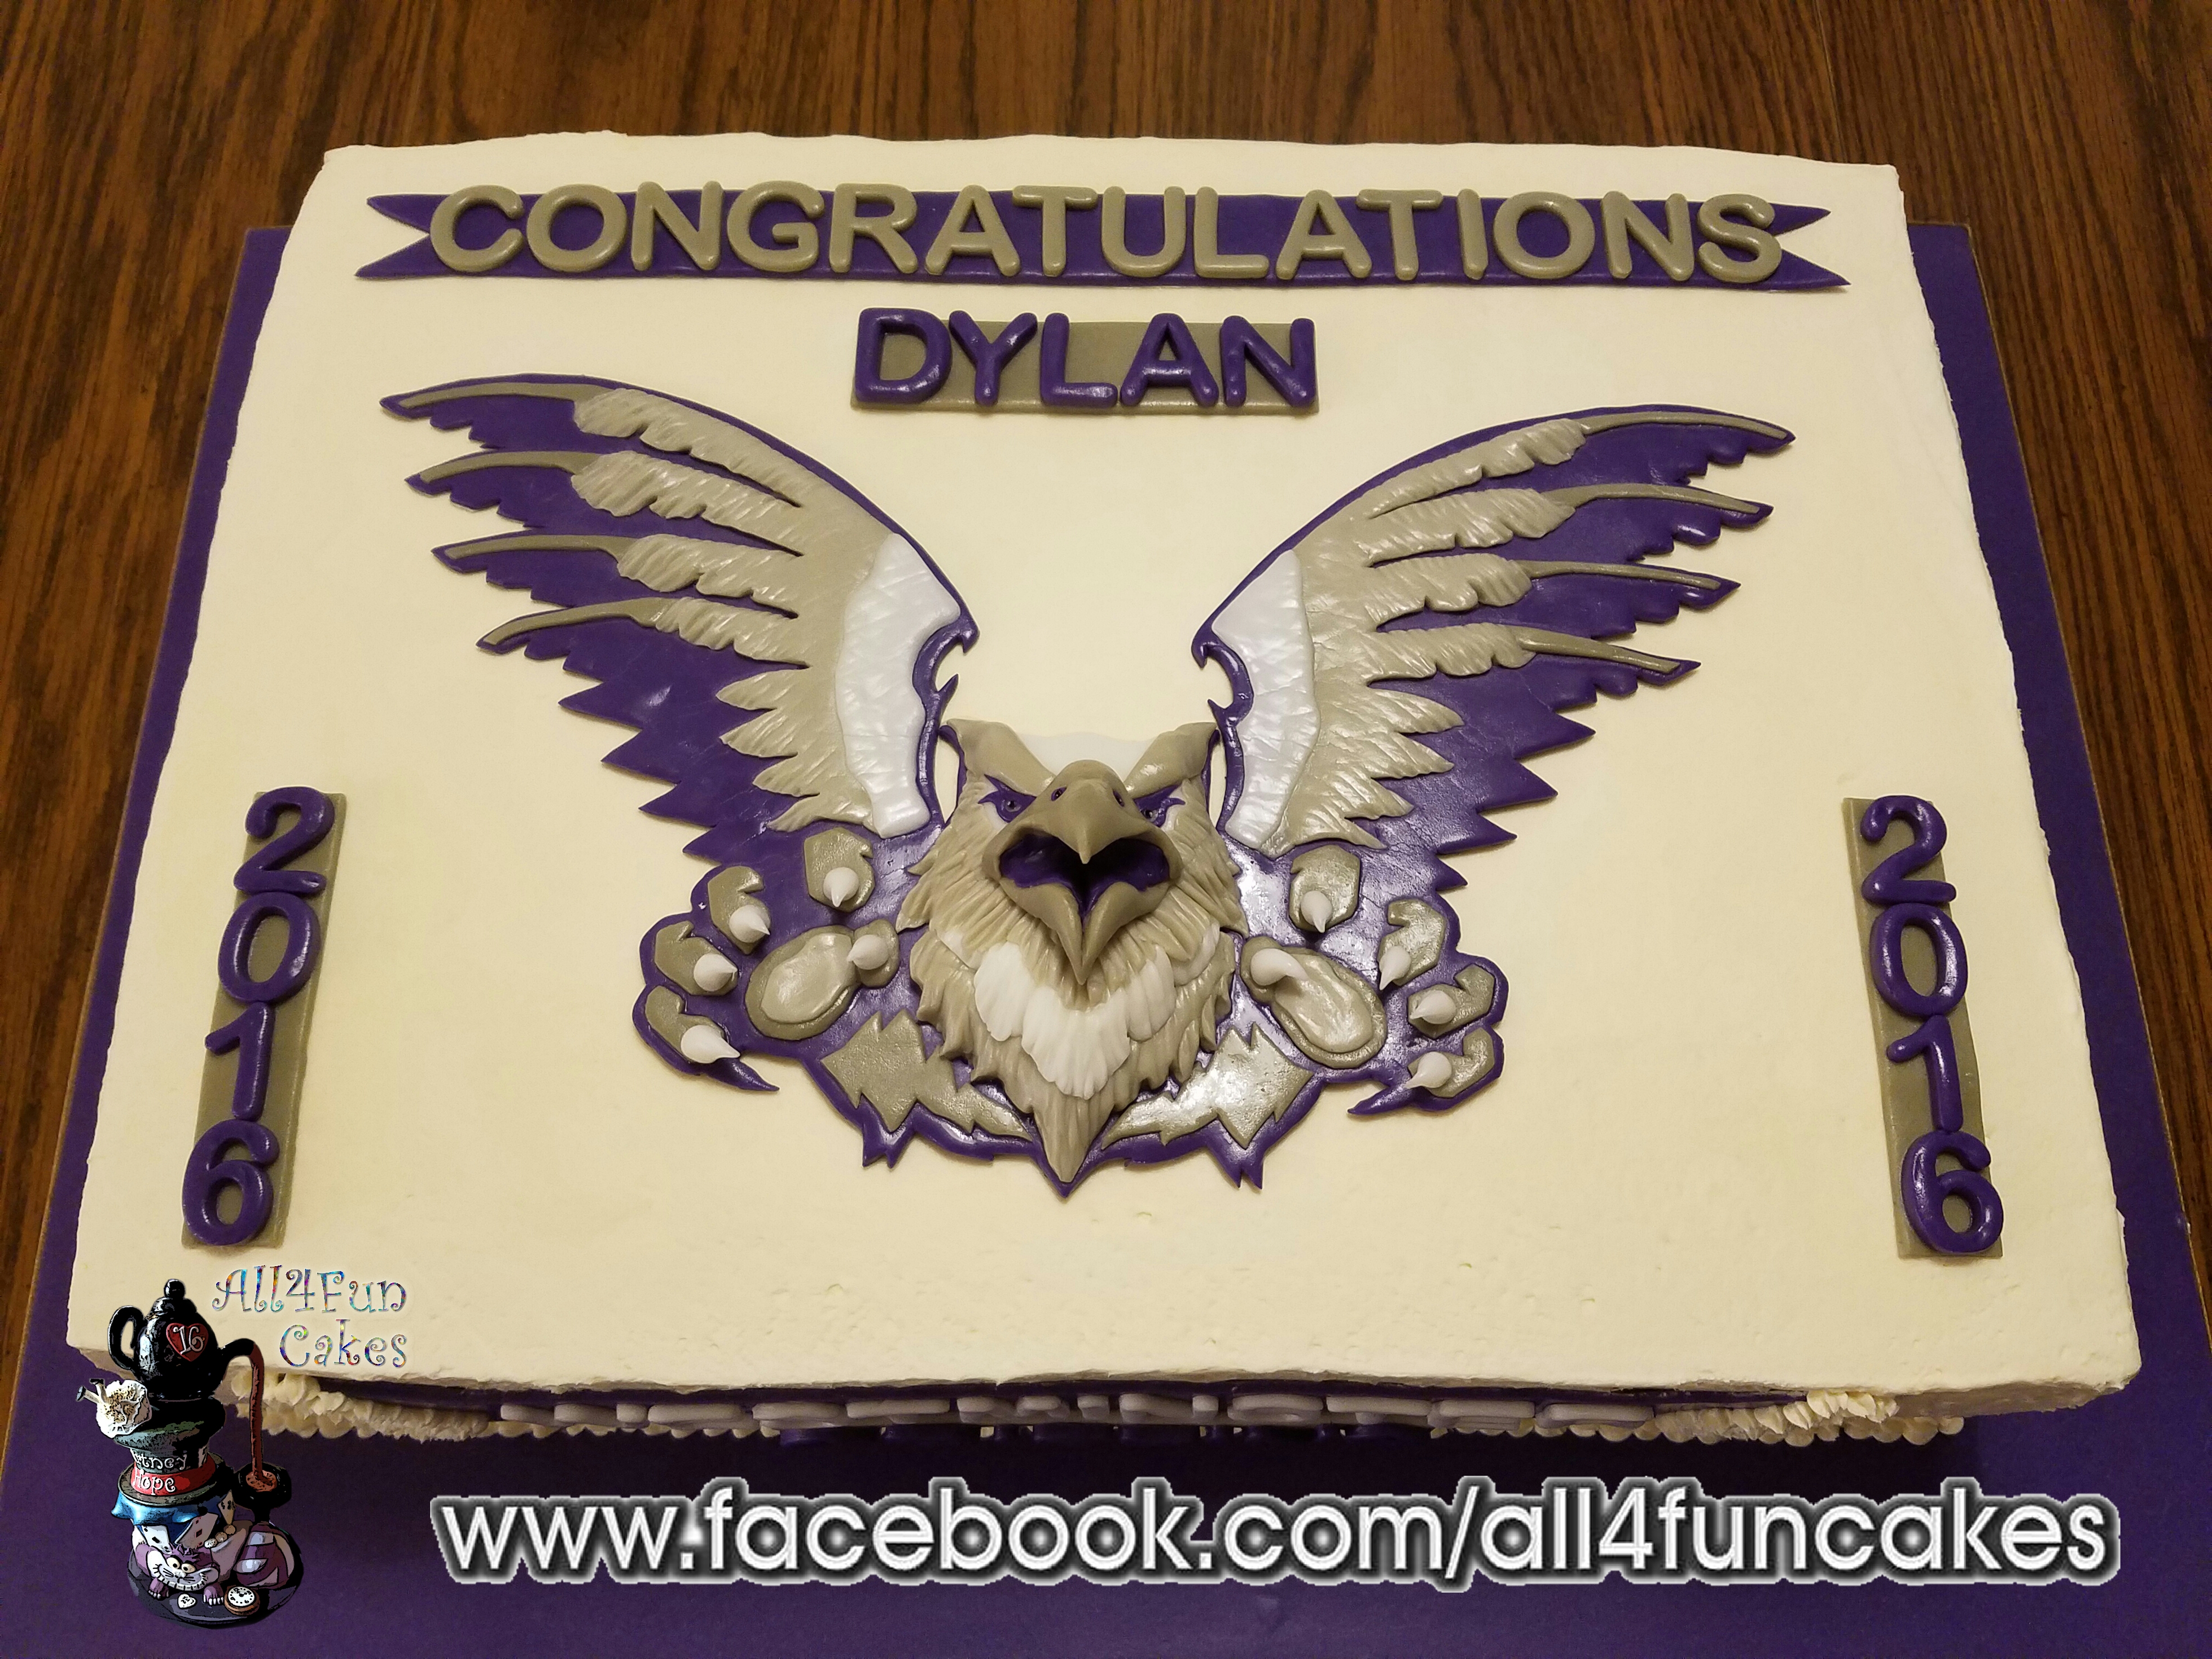 Westminster Griffins College Graduation Sheet Cake by All4Fun Cakes LLC 2016 - Single Use License Granted by Westminster College Salt Lake City Utah